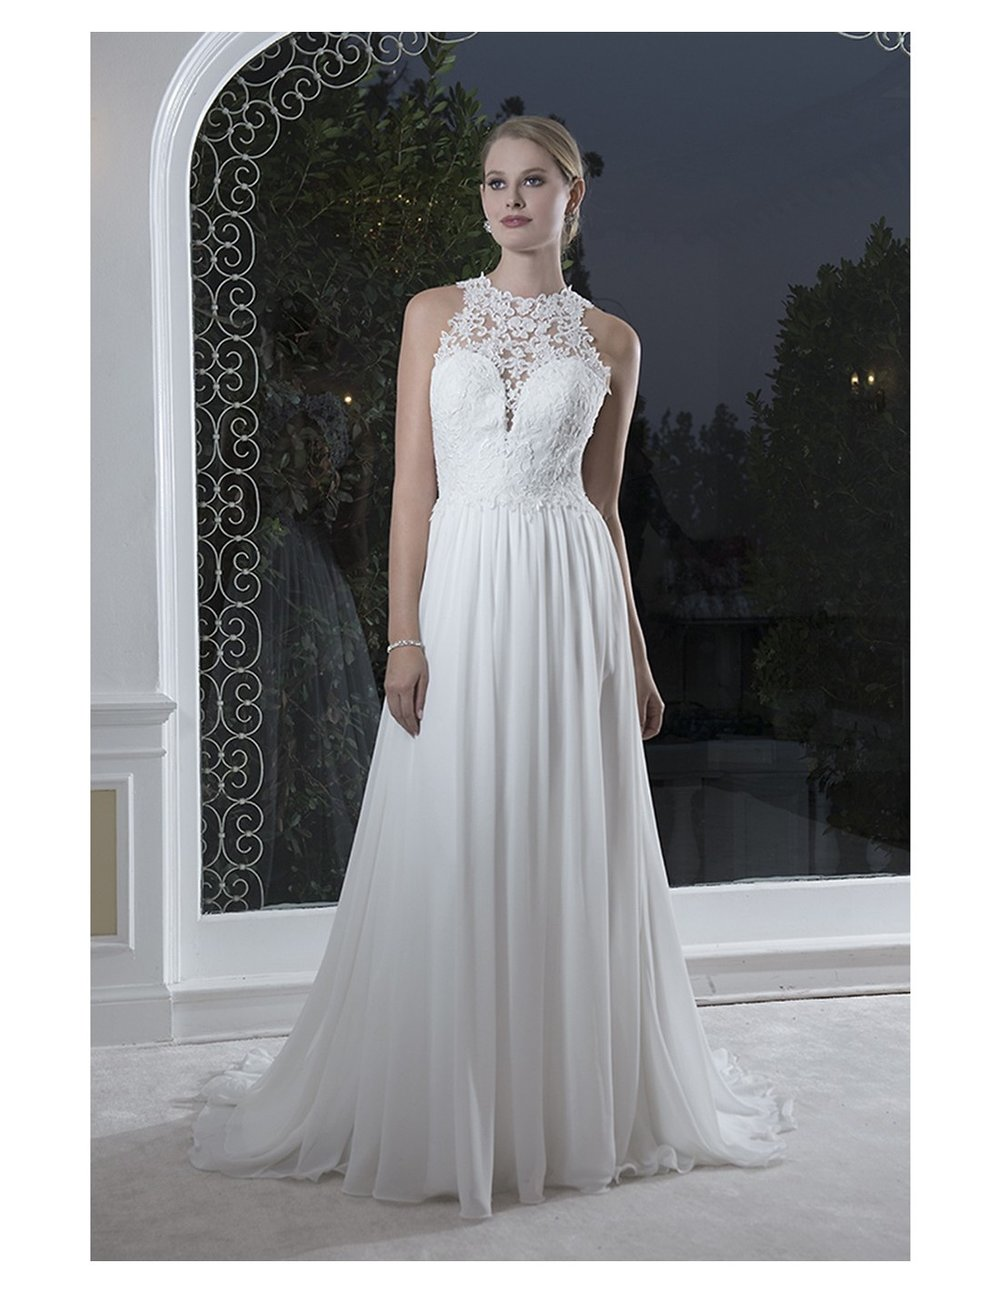 Venus Bridal PA9253  size 14             Call for Pricing